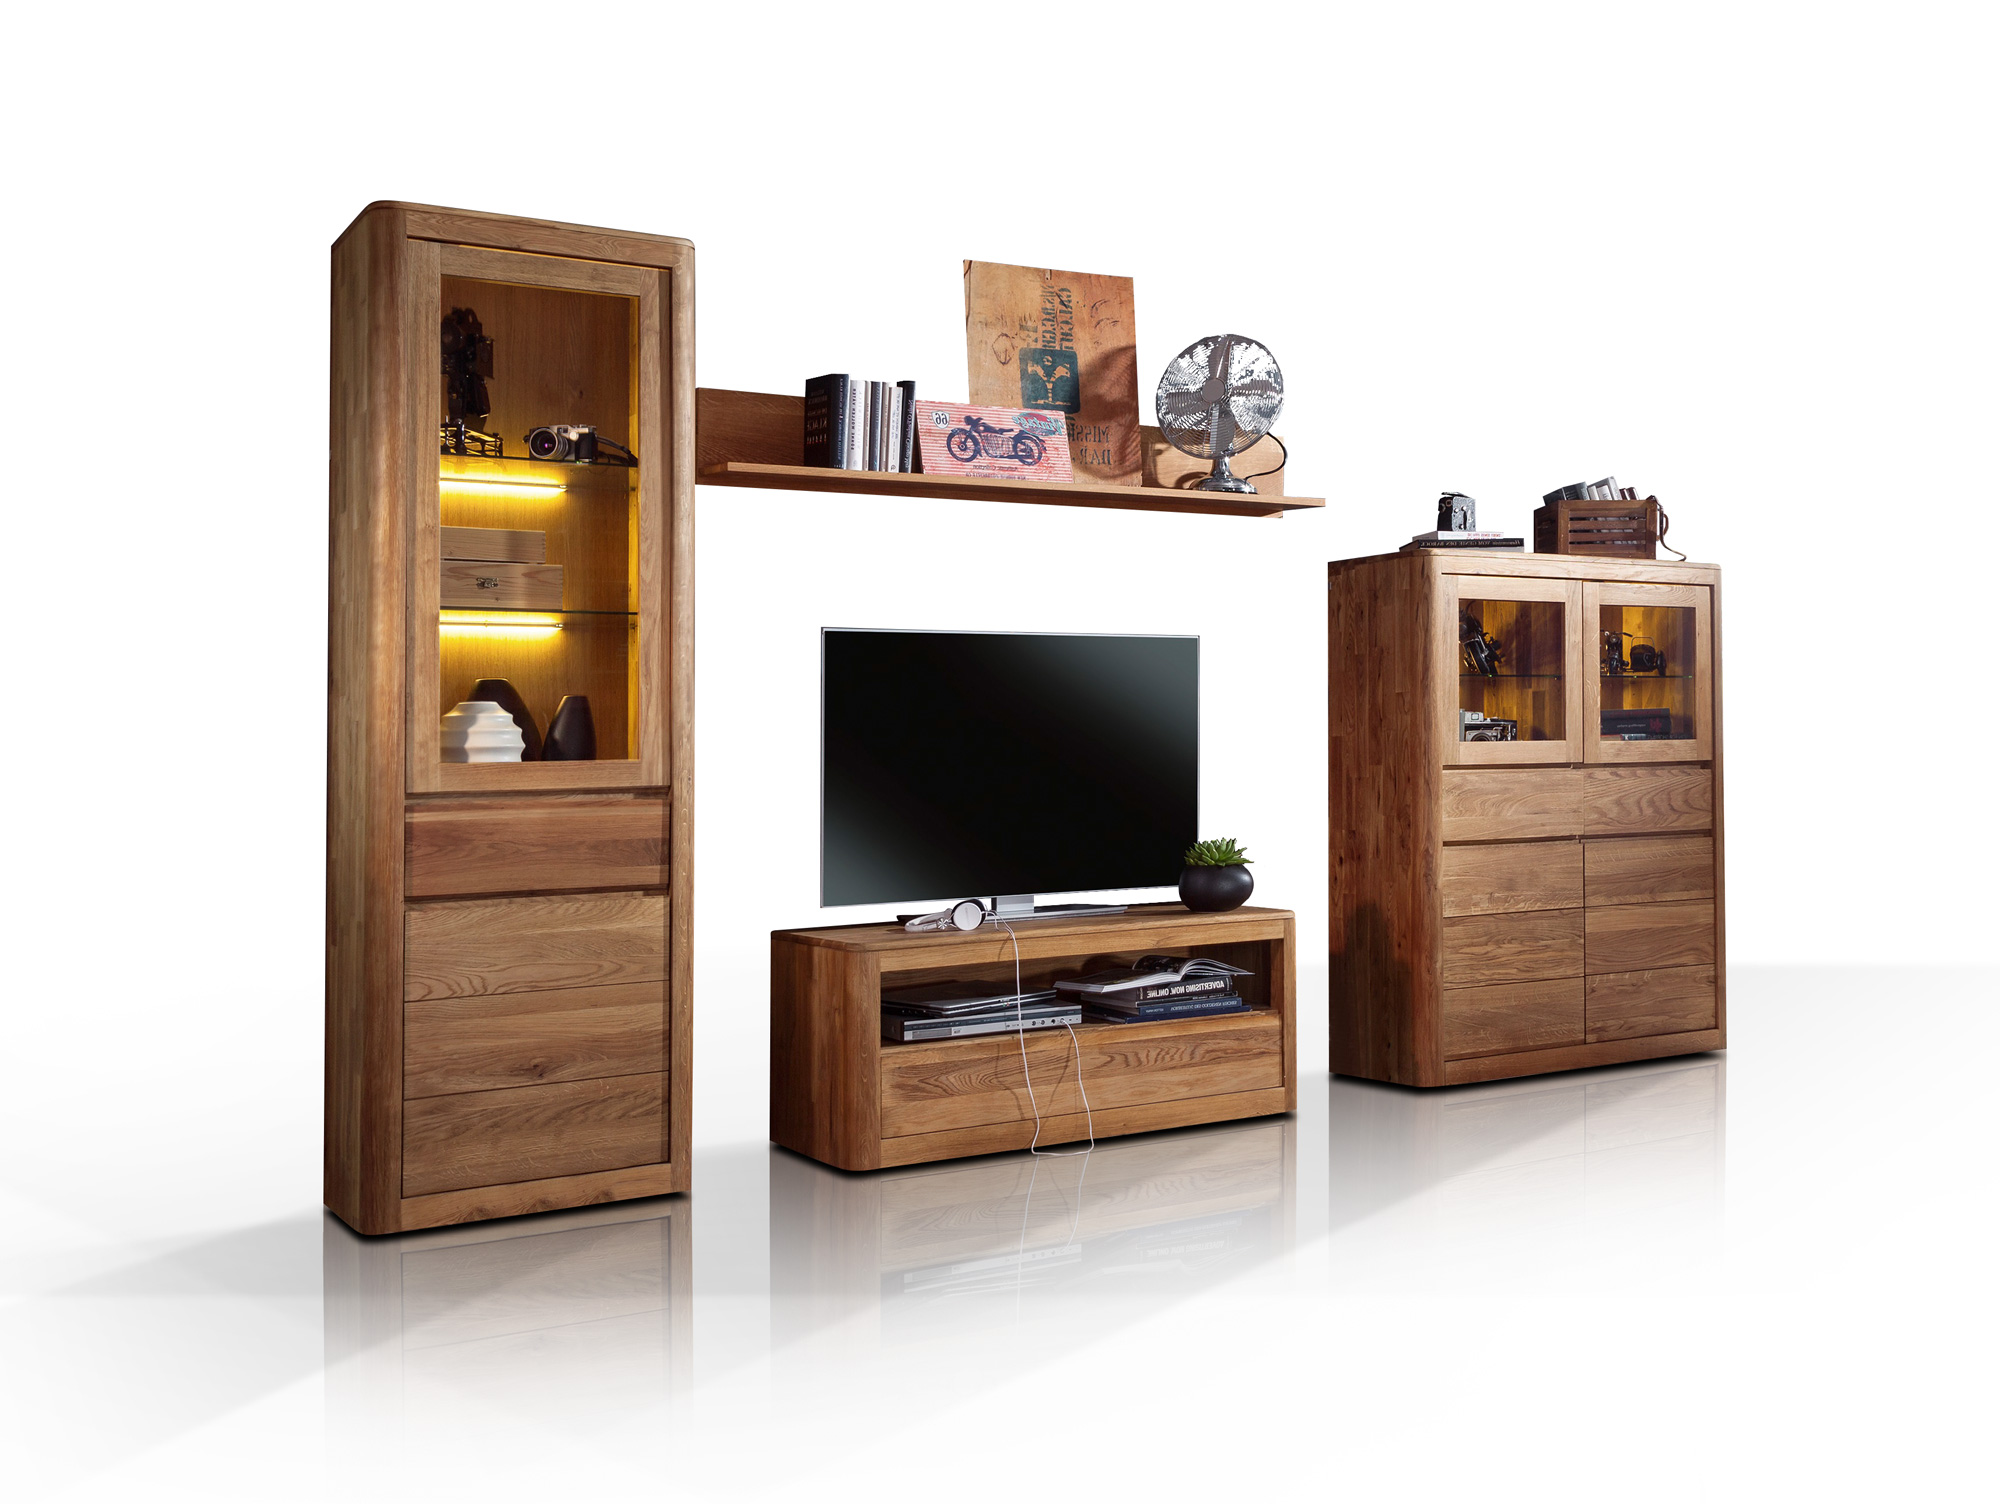 astoria wohnwand wildeiche massiv ge lt. Black Bedroom Furniture Sets. Home Design Ideas